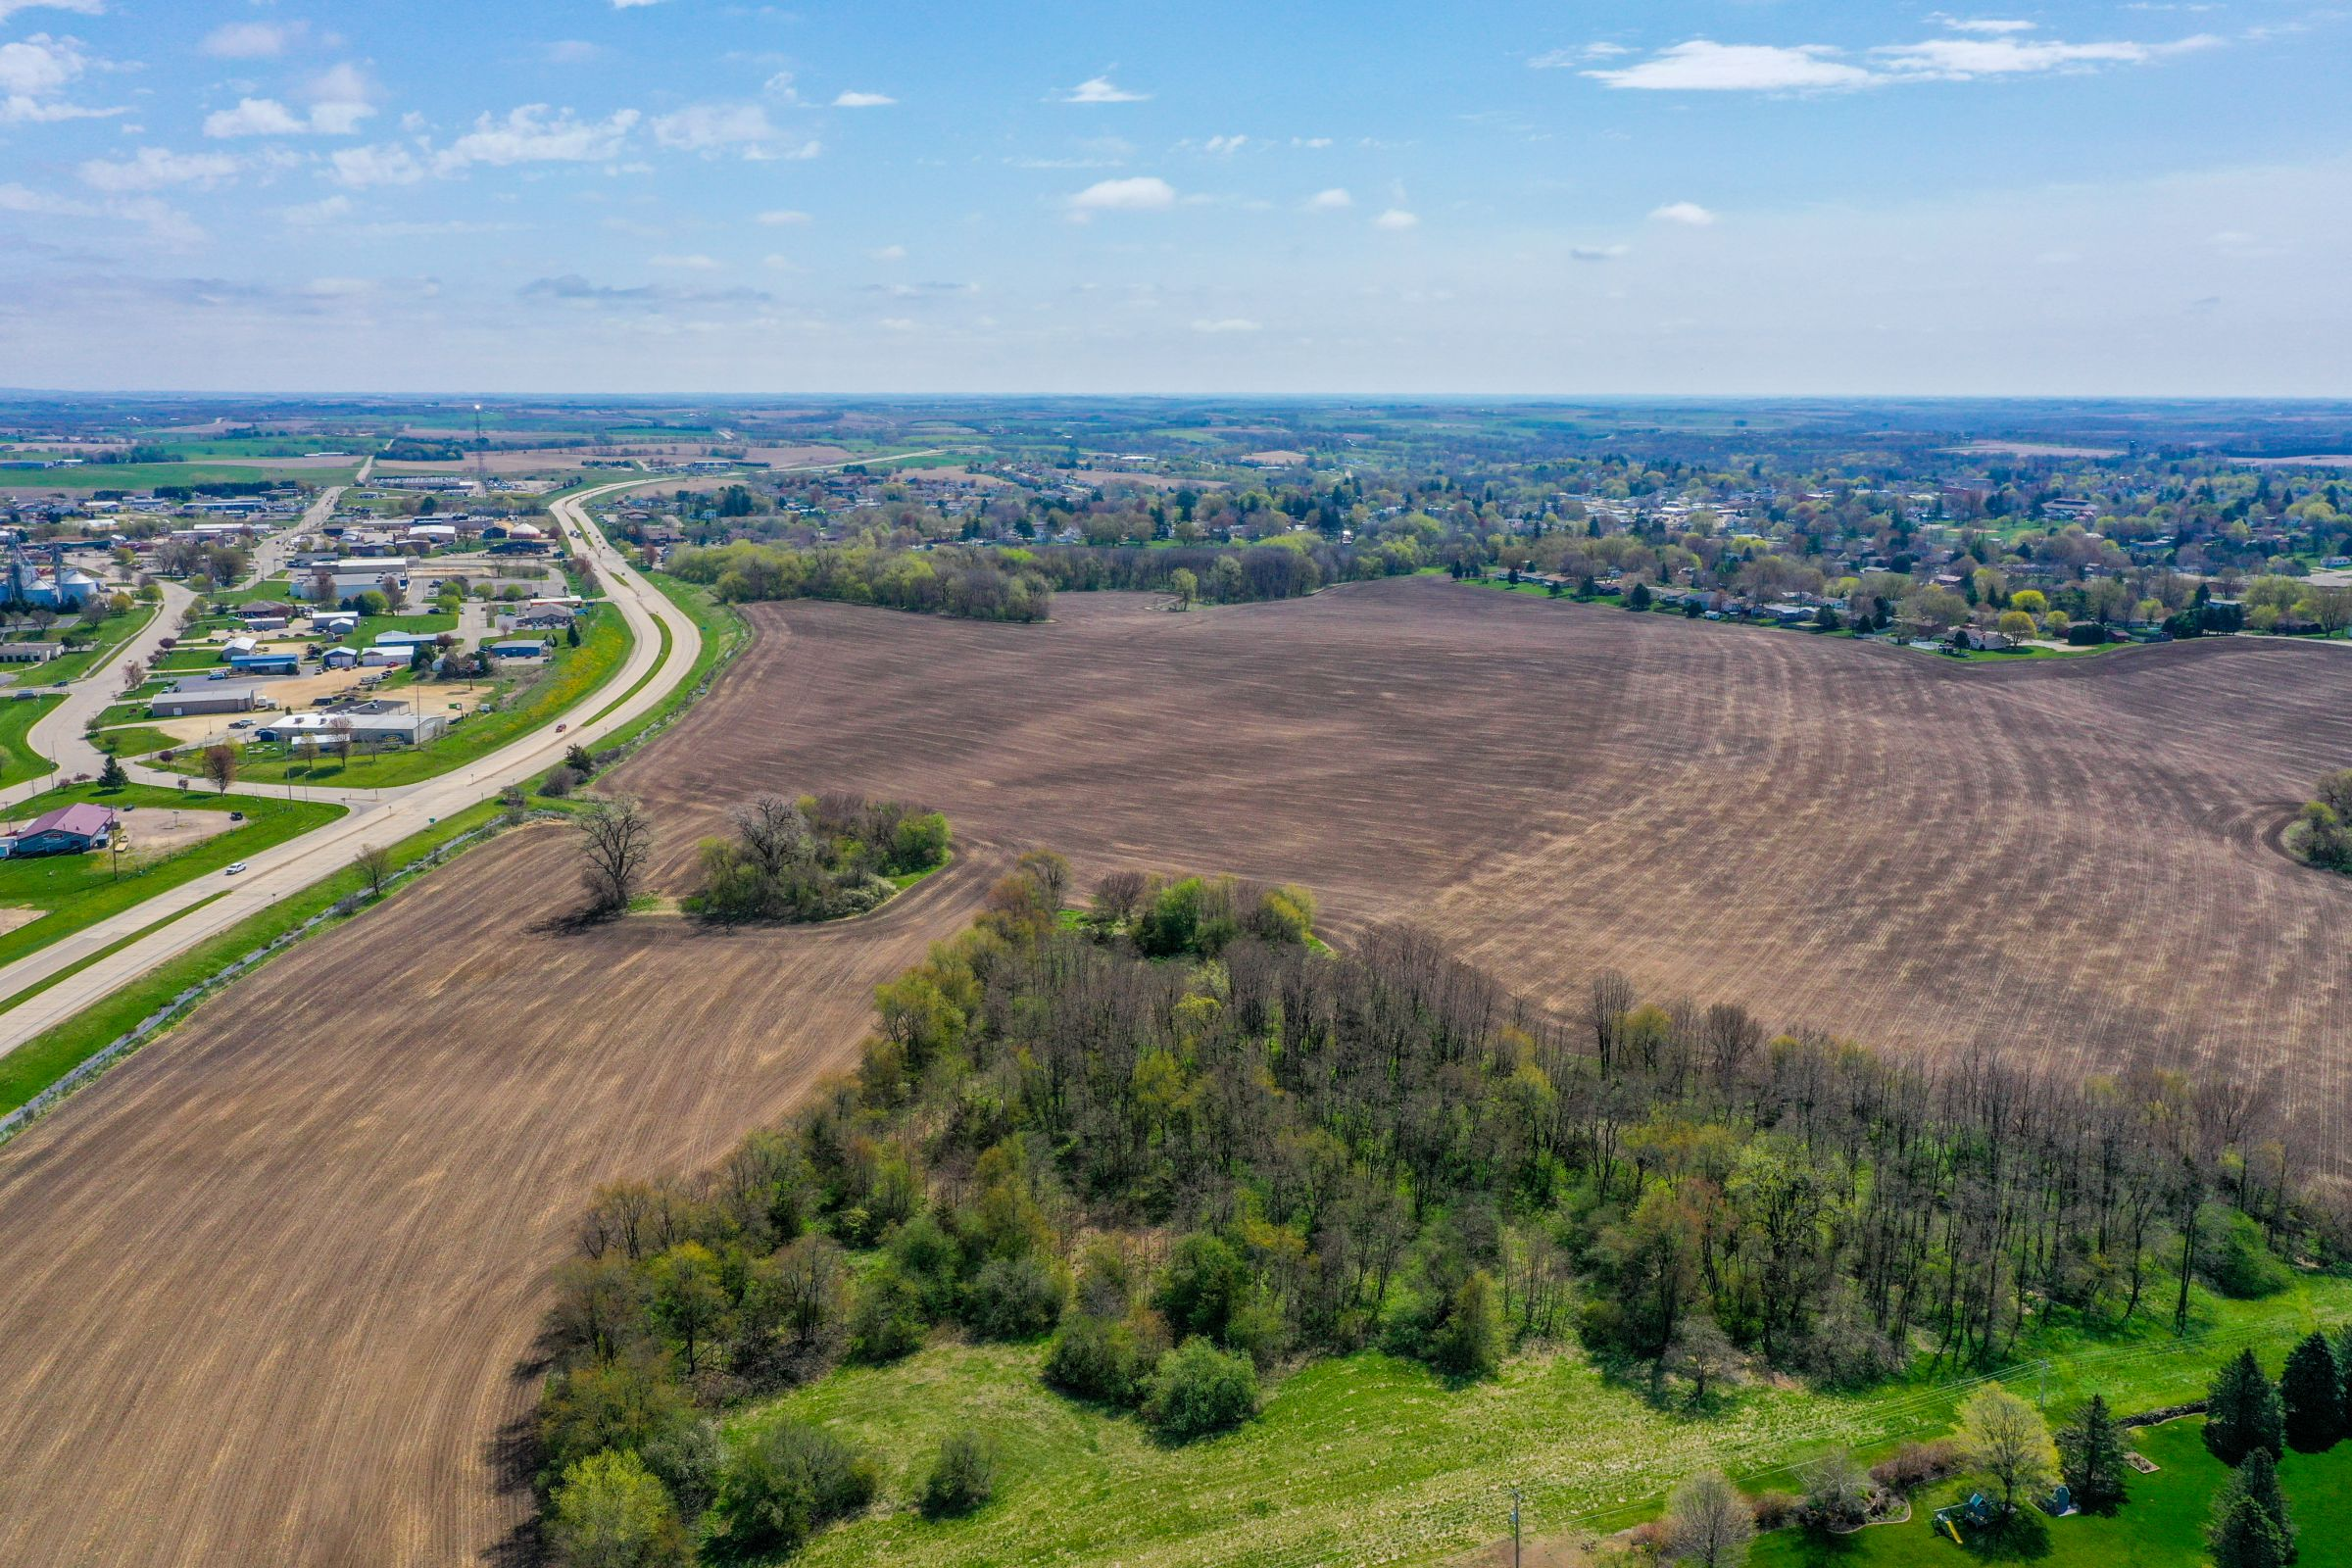 development-land-commercial-iowa-county-wisconsin-152-acres-listing-number-15474-1-2021-05-18-163545.jpg